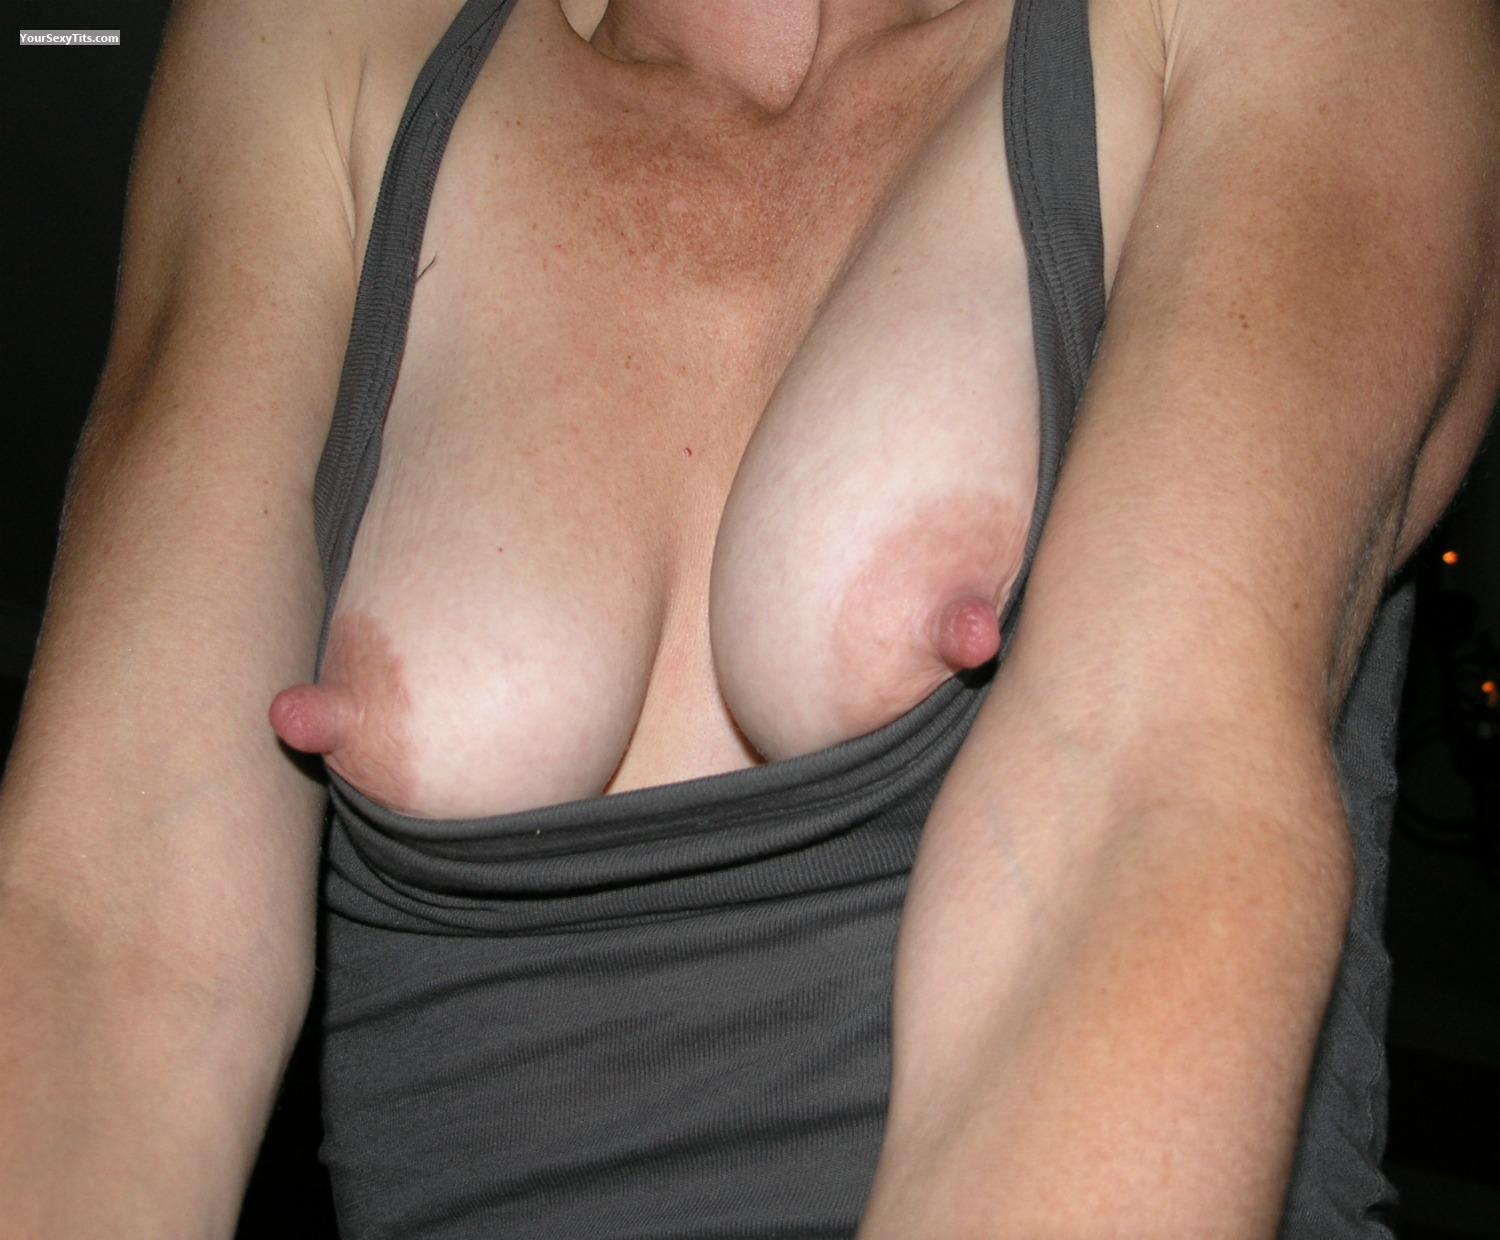 Tit Flash: Medium Tits - Belinda NYC from United States